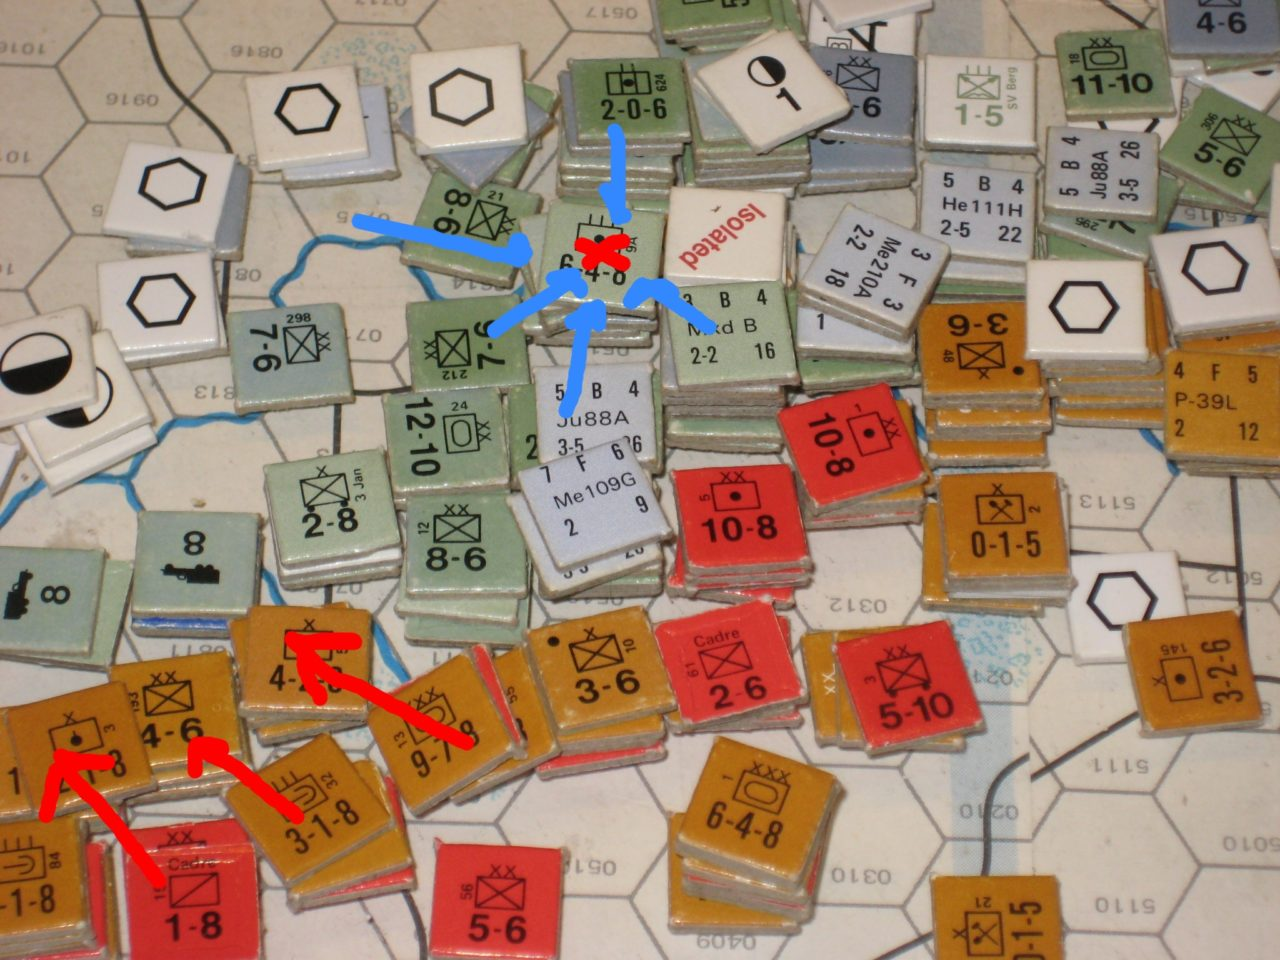 April 1943: Battle of Voronezh